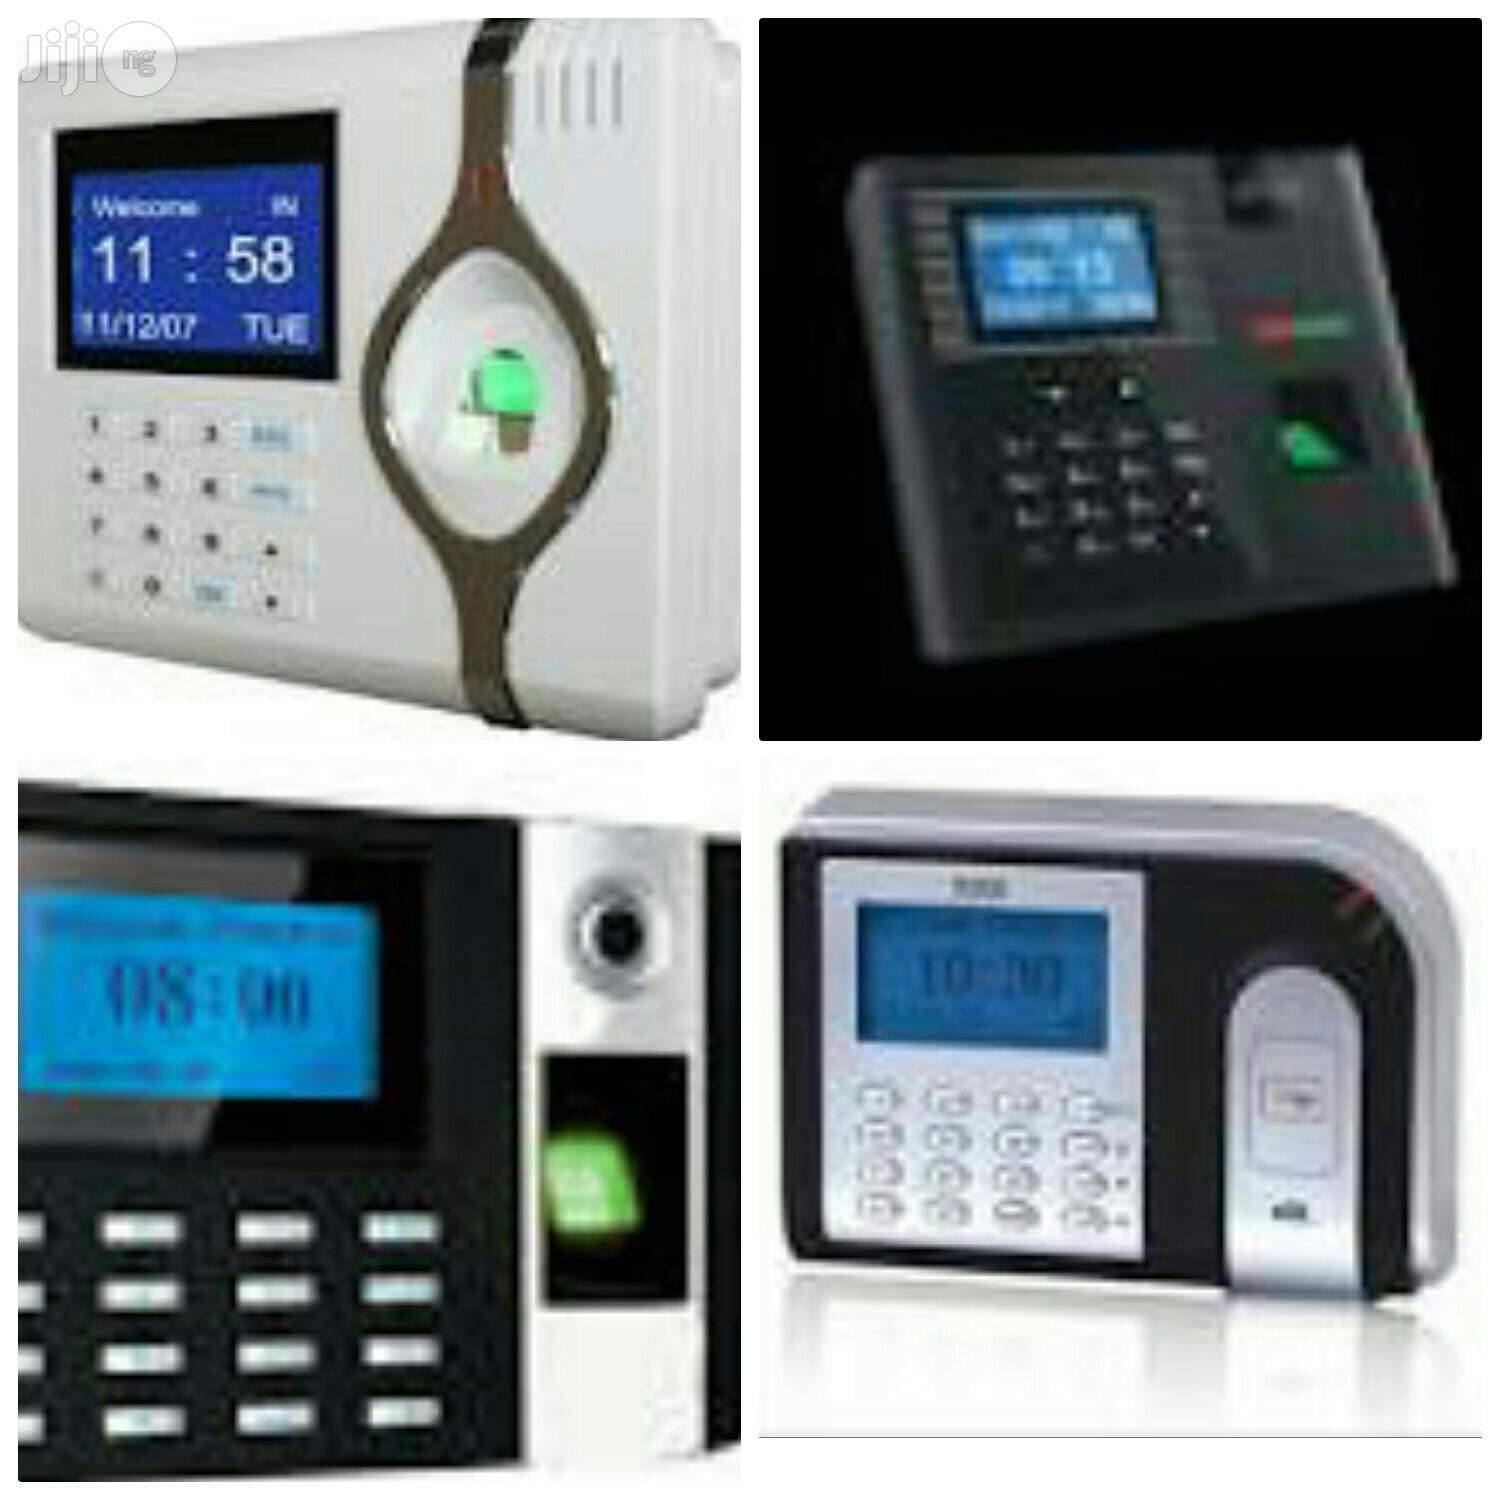 Access Control / Biometric Time & Attendance | Computer & IT Services for sale in Lagos State, Nigeria